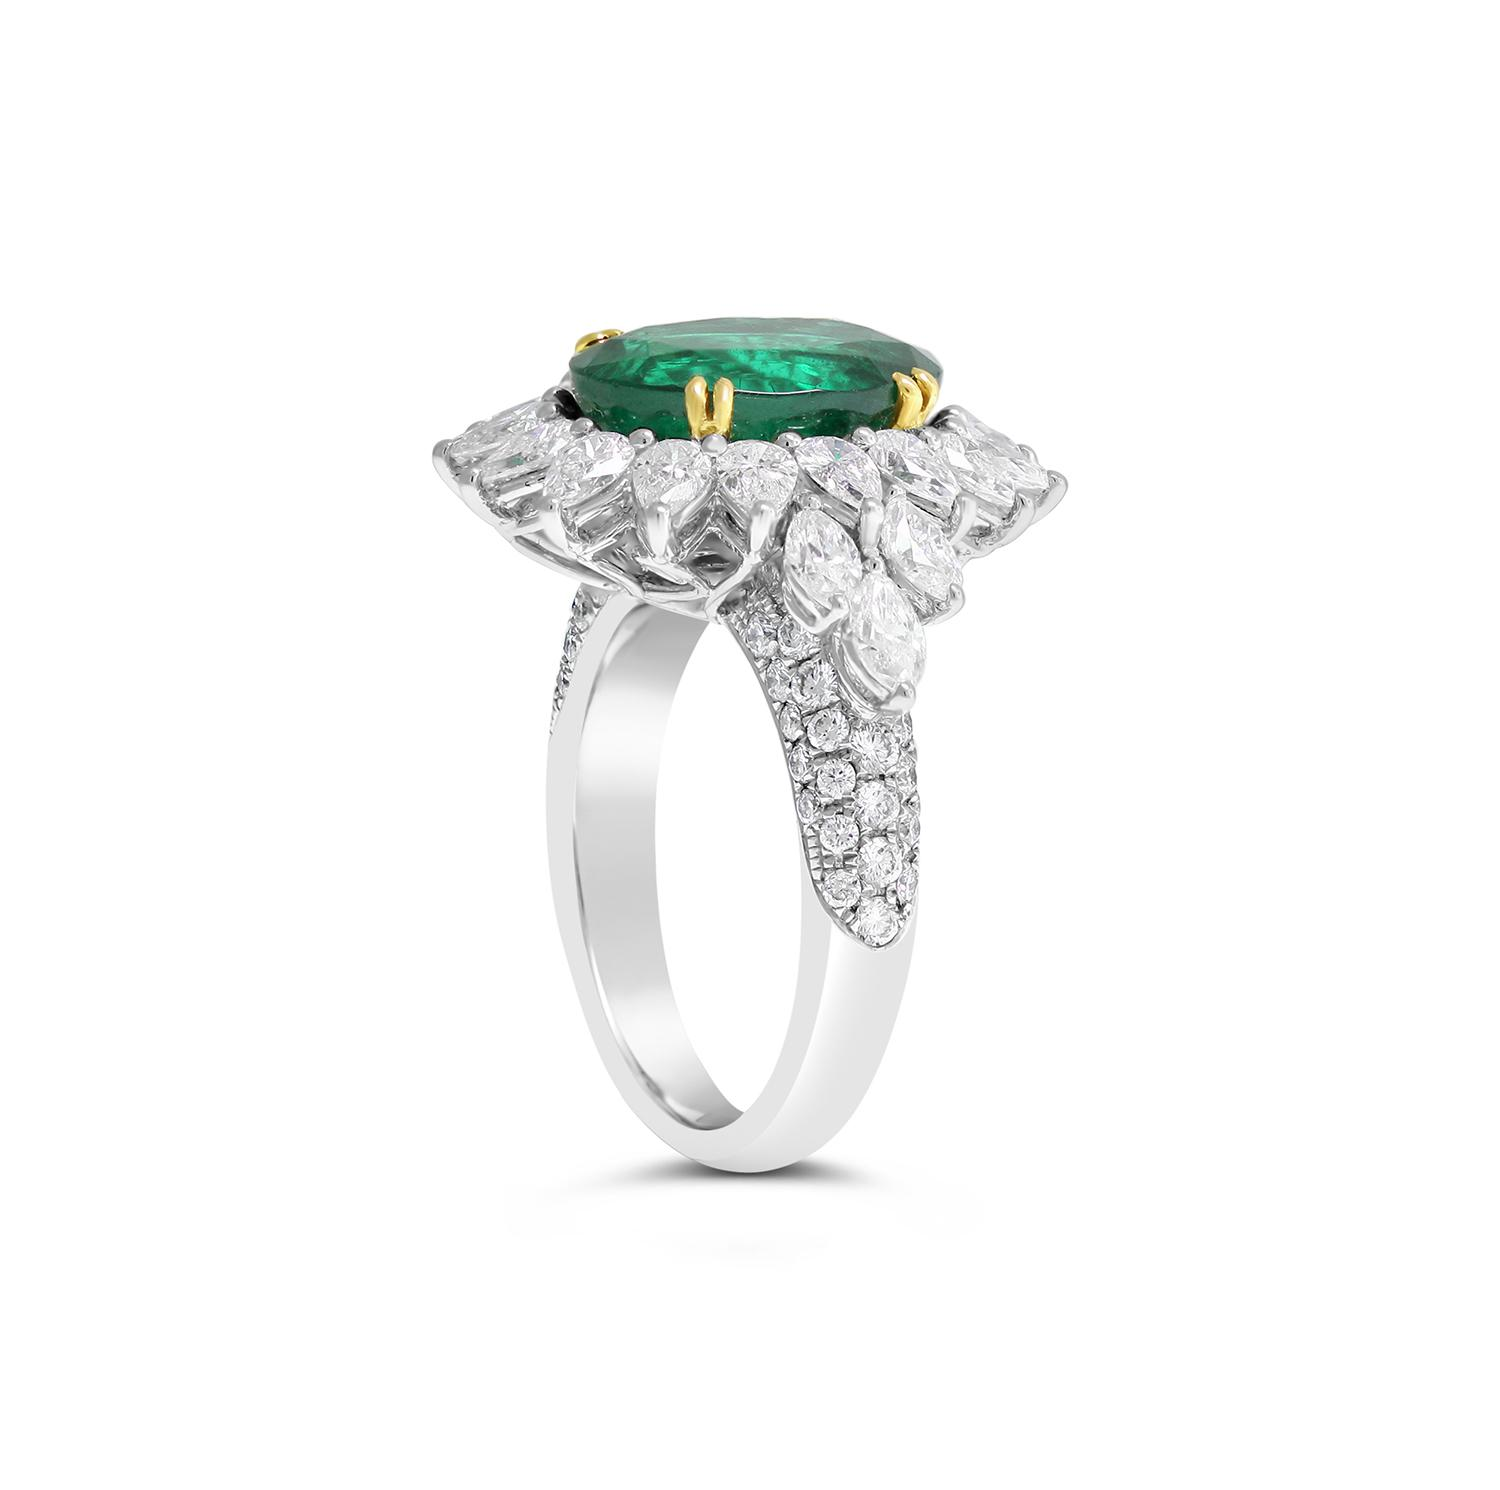 Oval Emerald And Diamond Ring Fairfax Amp Roberts